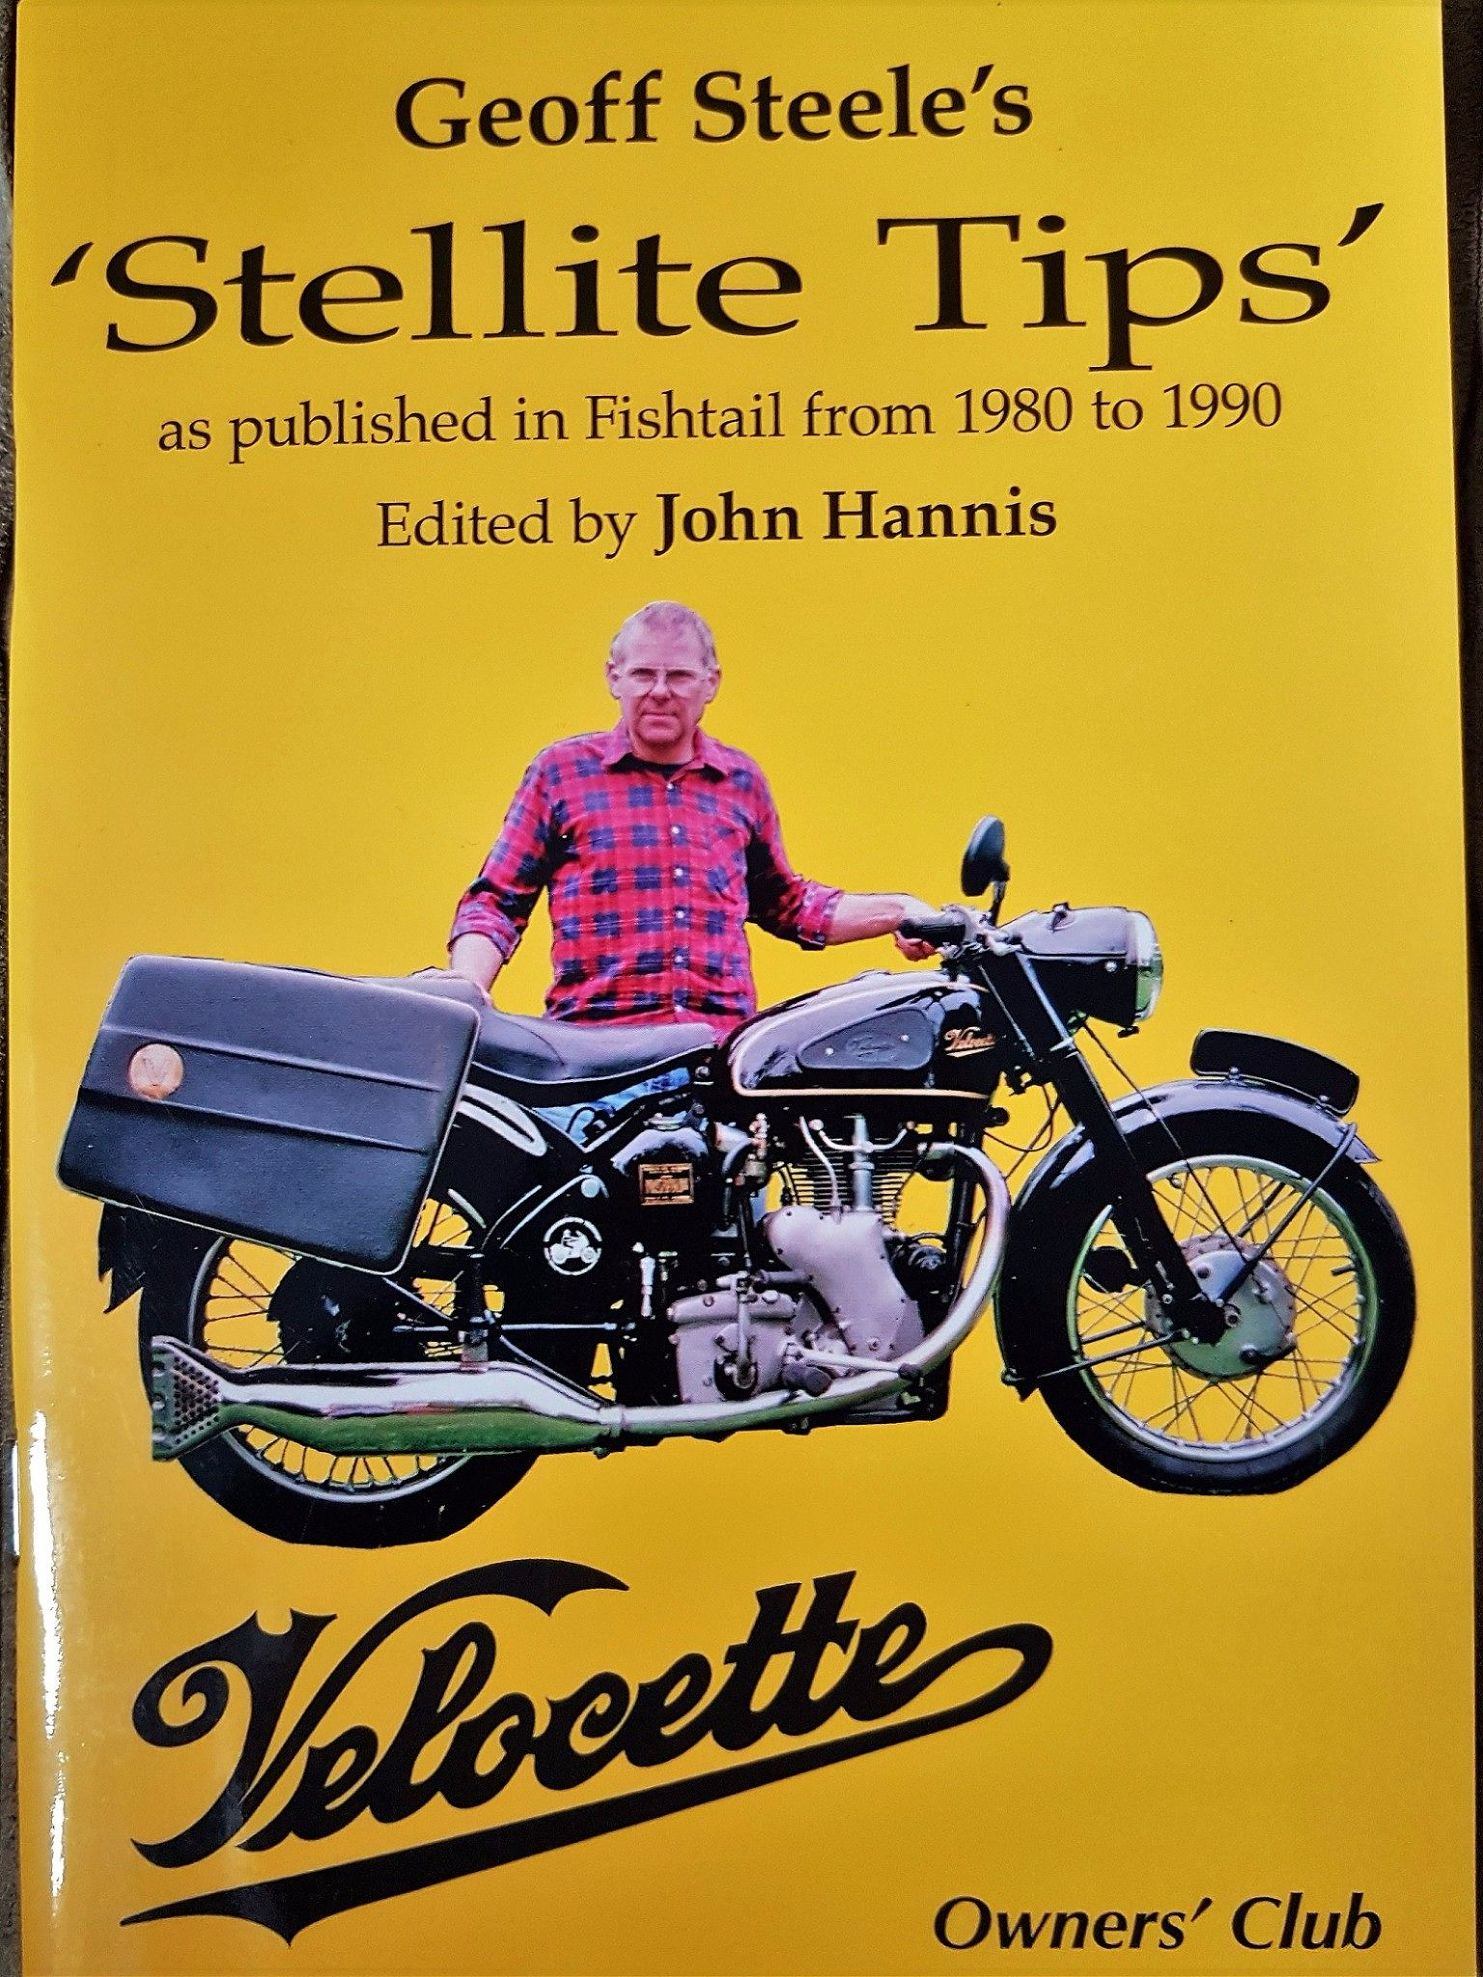 Stellite Tips by Geoff Steele